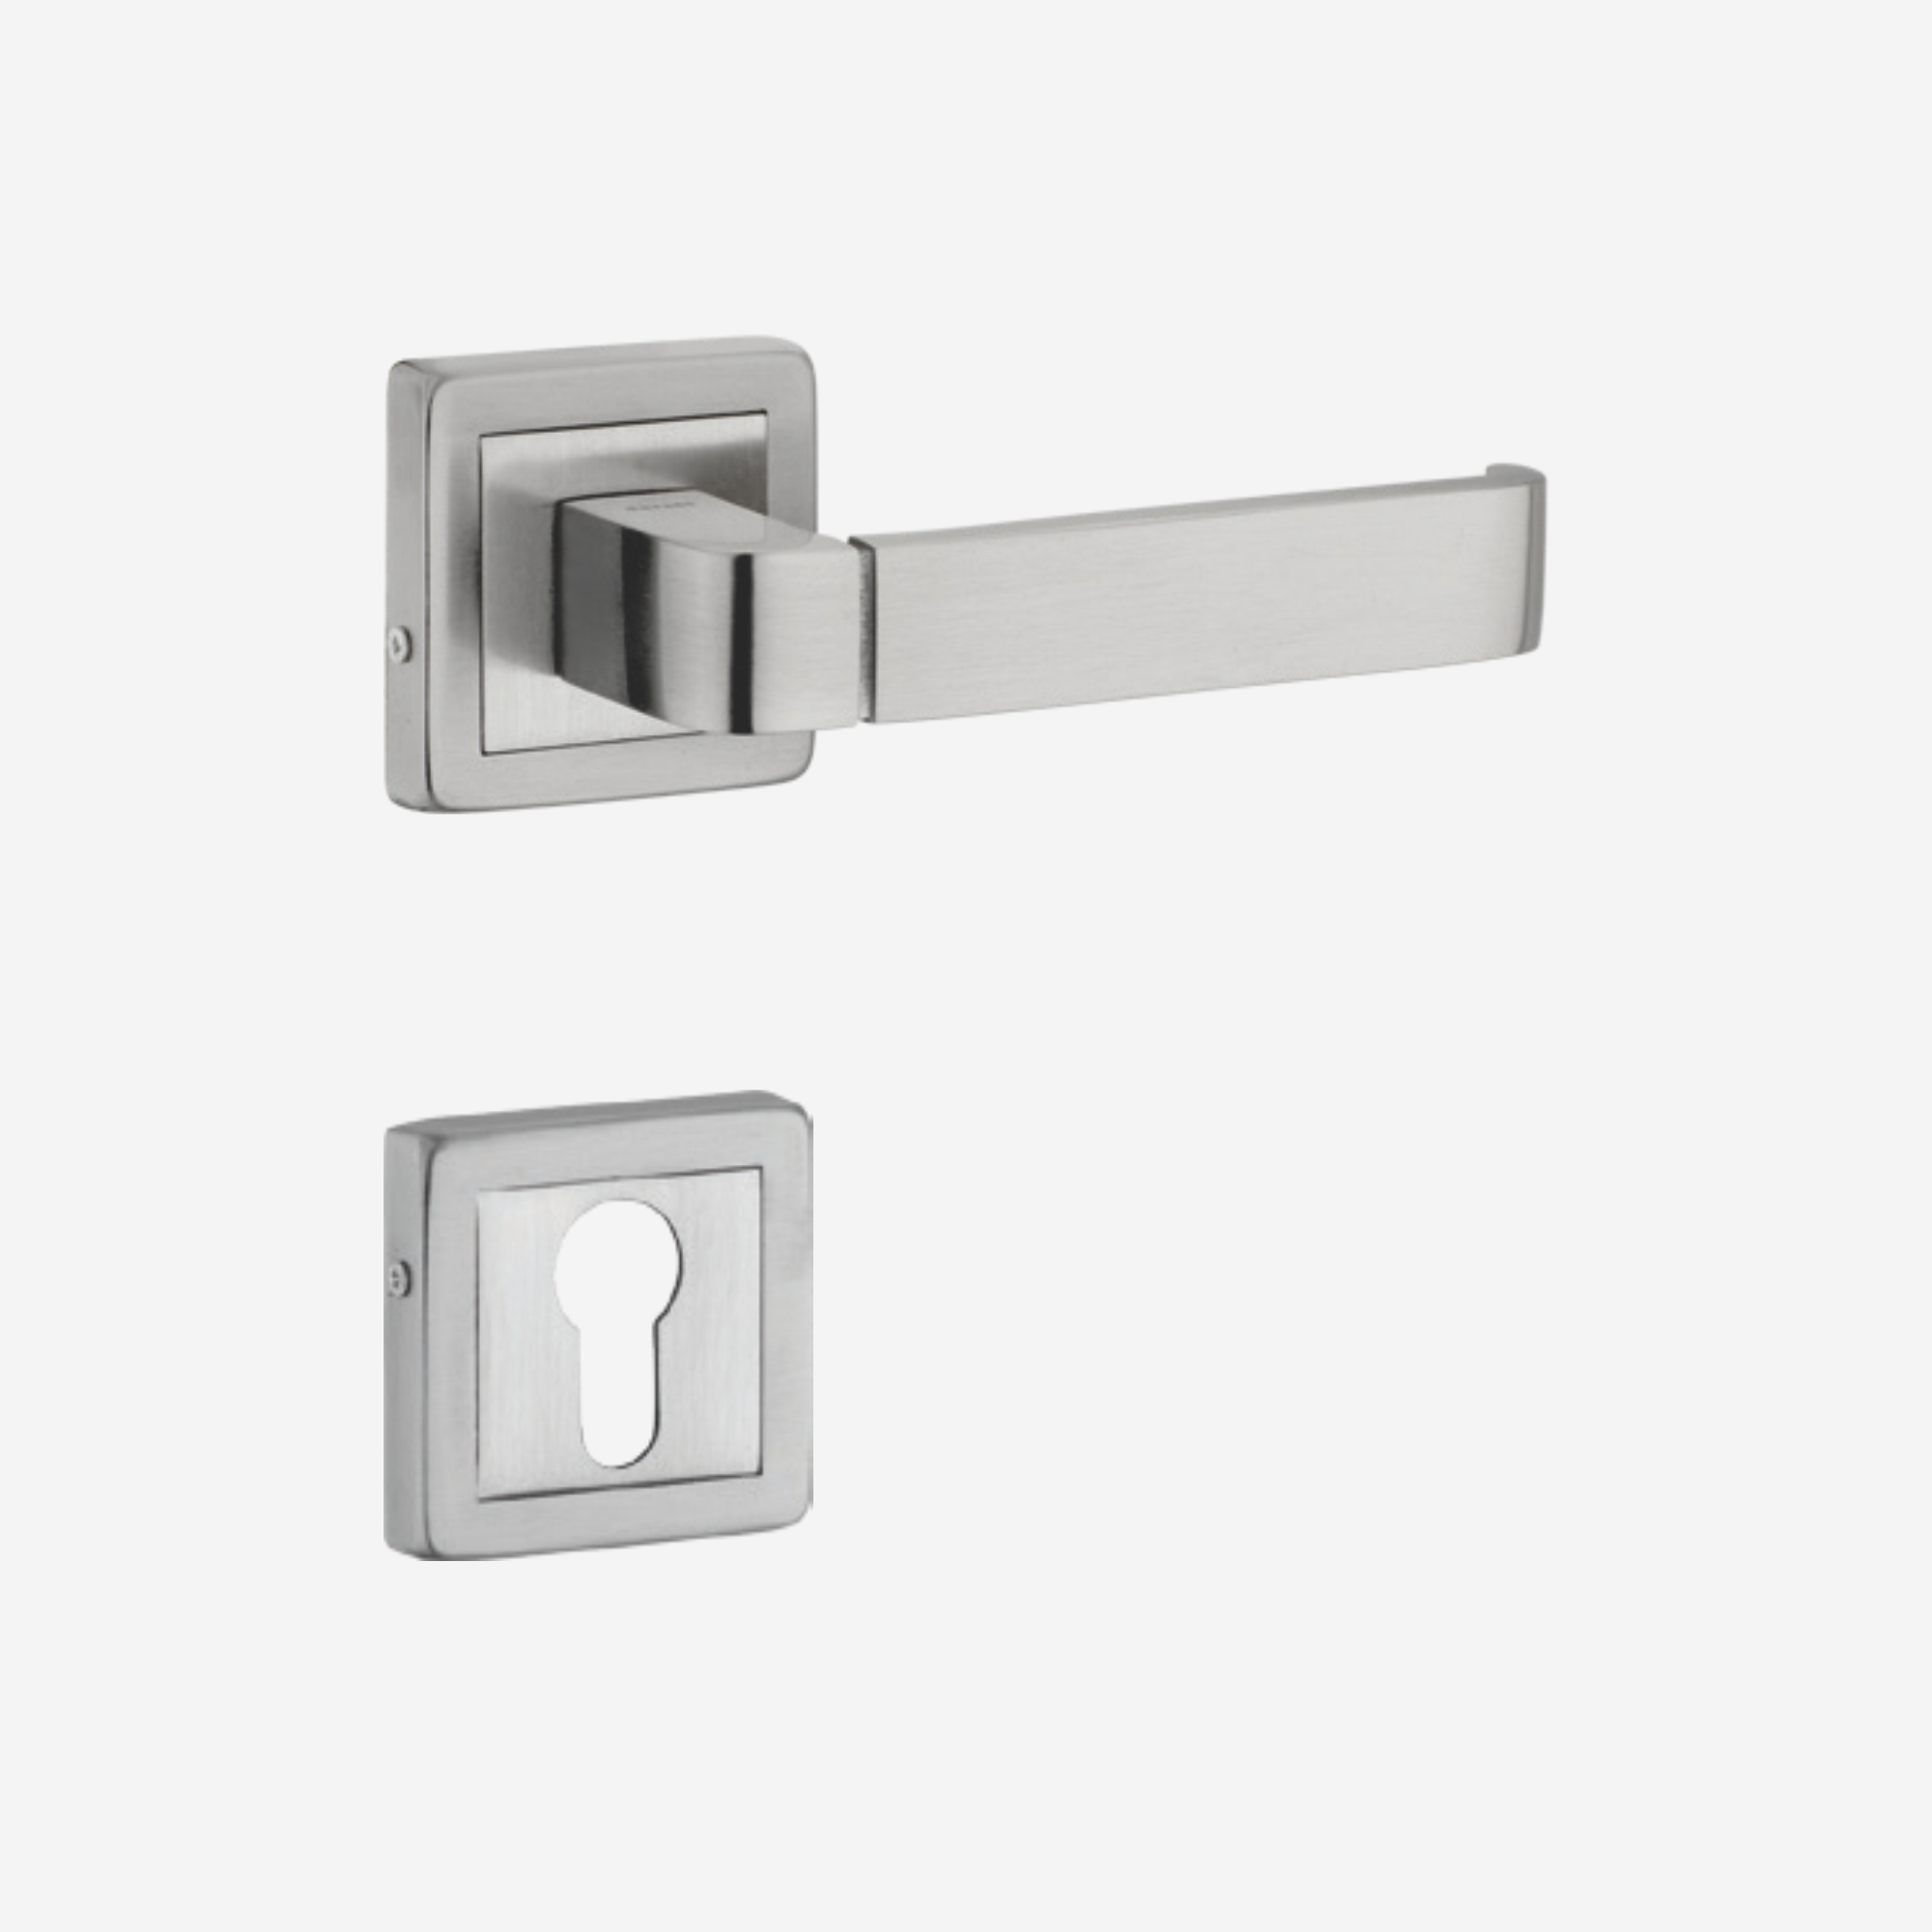 Dorset Lever handle for doors with lock _ cylinder - MY OR (SS)